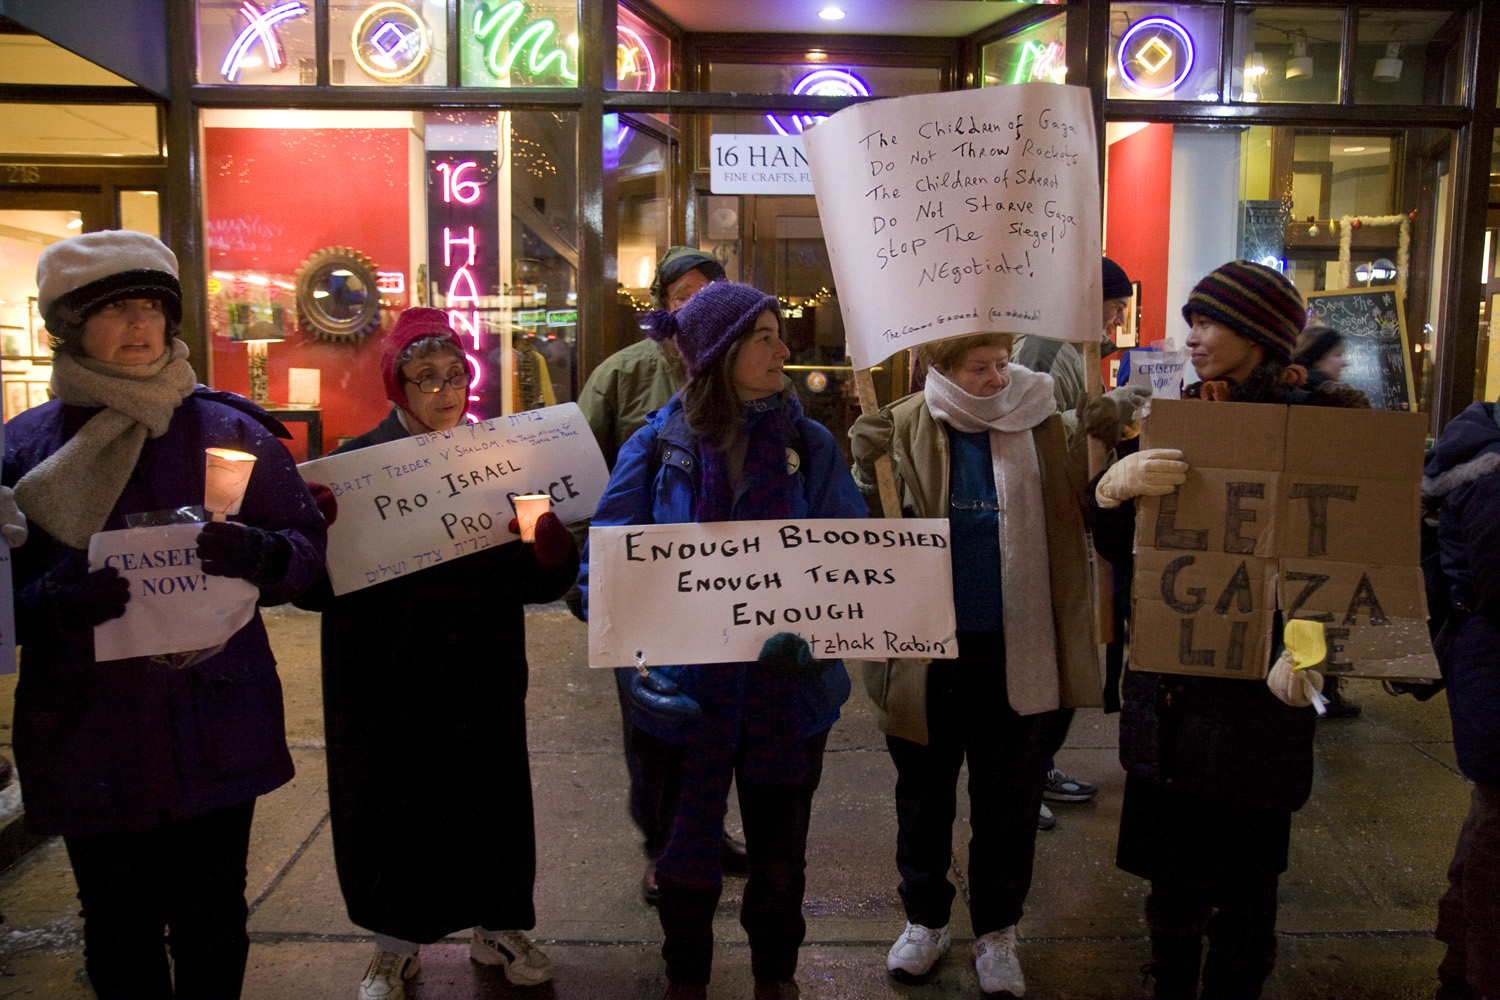 Interfaith Council for Peace and Justice: Gaza Vigil in front of 16 Hands, Main Street, 2009 image